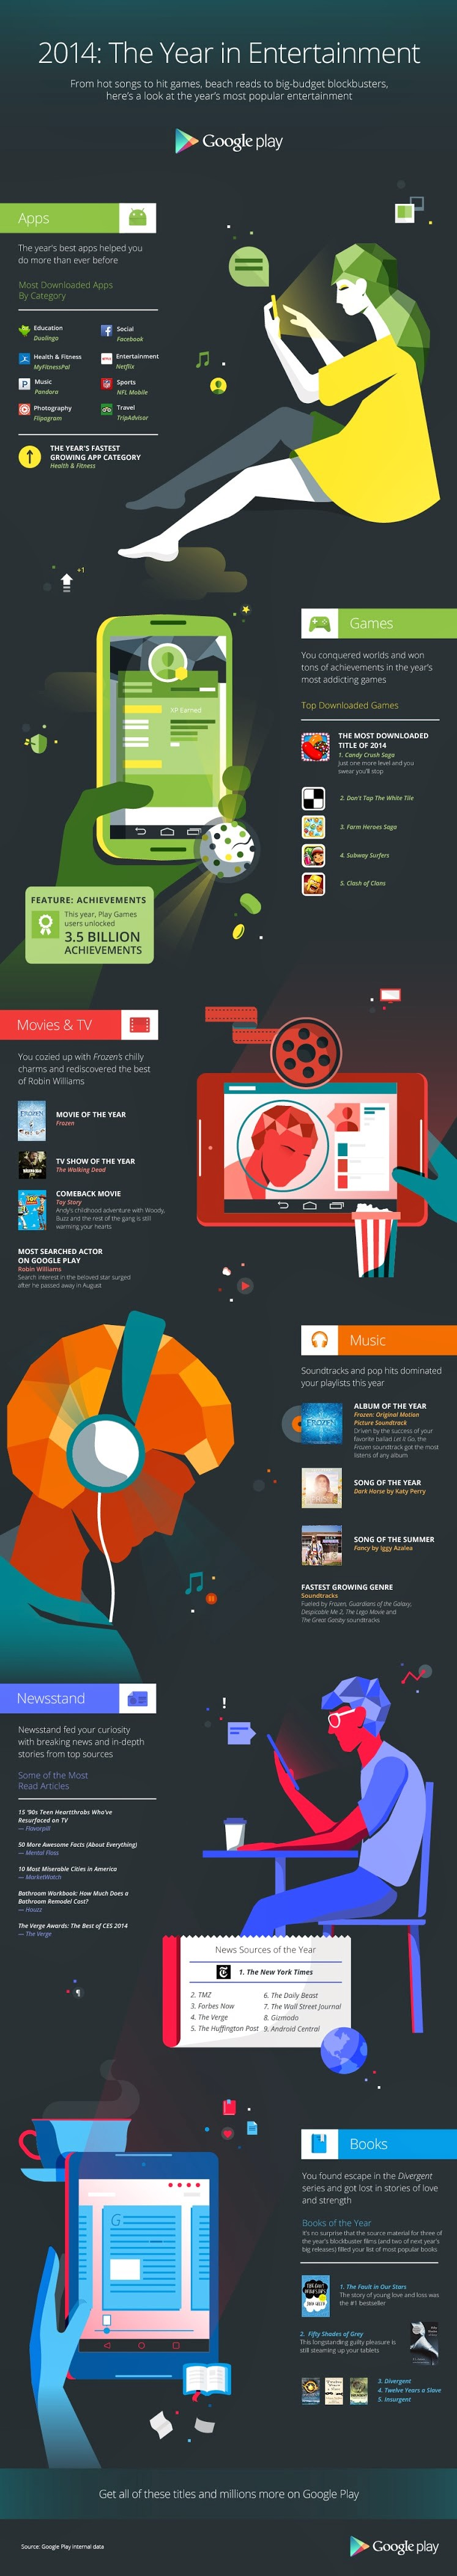 Google Play - End of Year Infographic - 2014